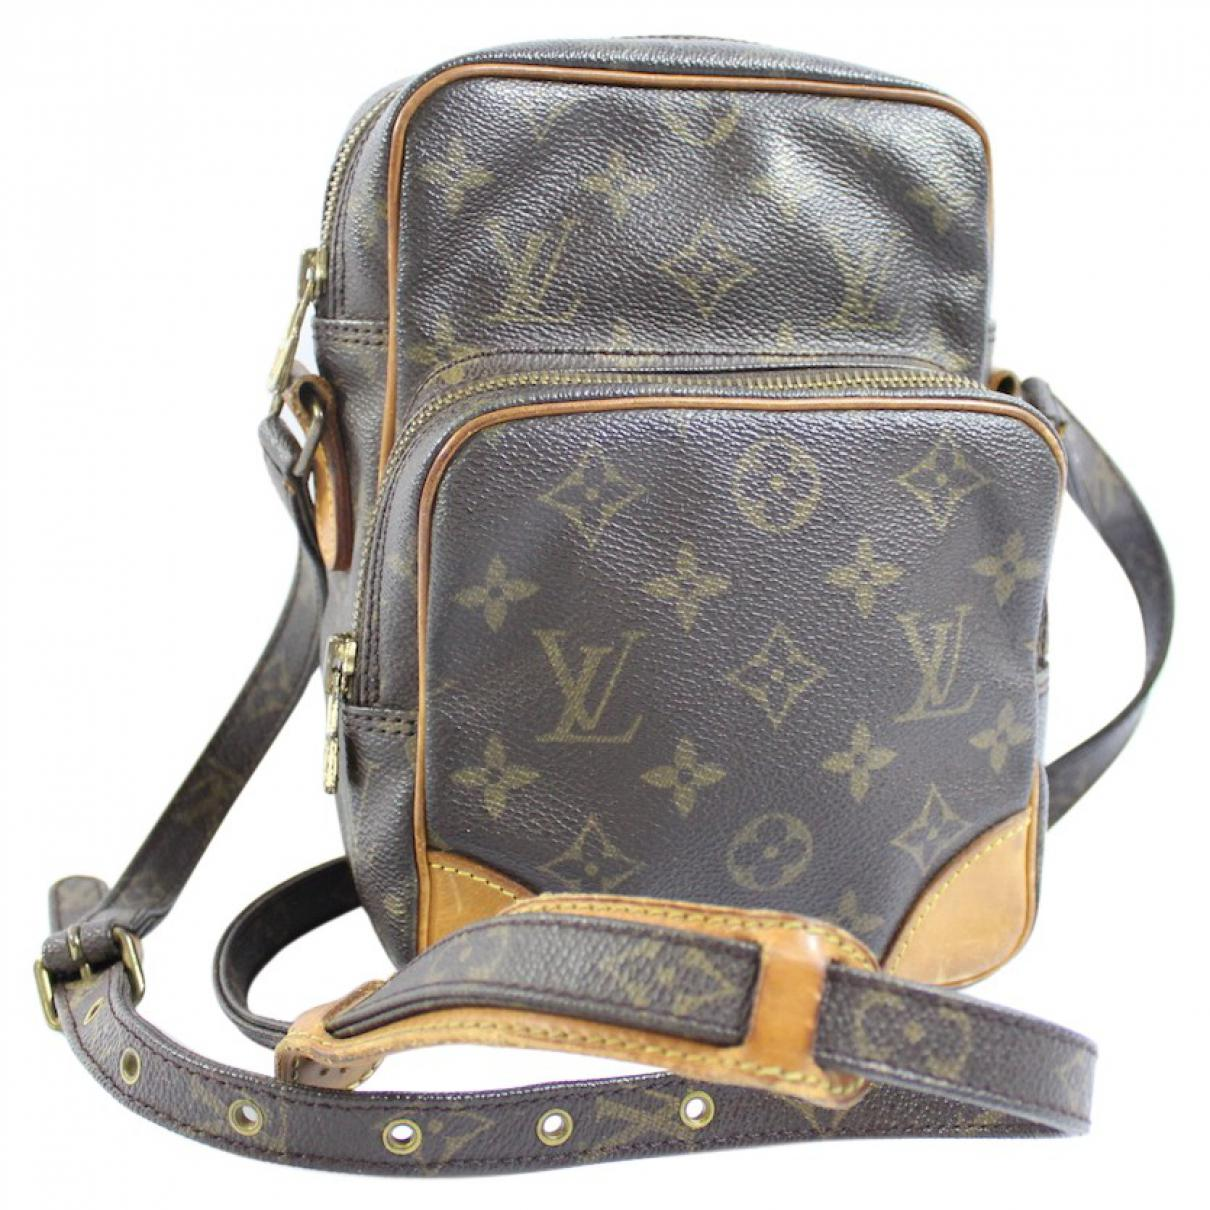 30179d45a57 Louis Vuitton Amazon Cloth Crossbody Bag in Brown - Lyst